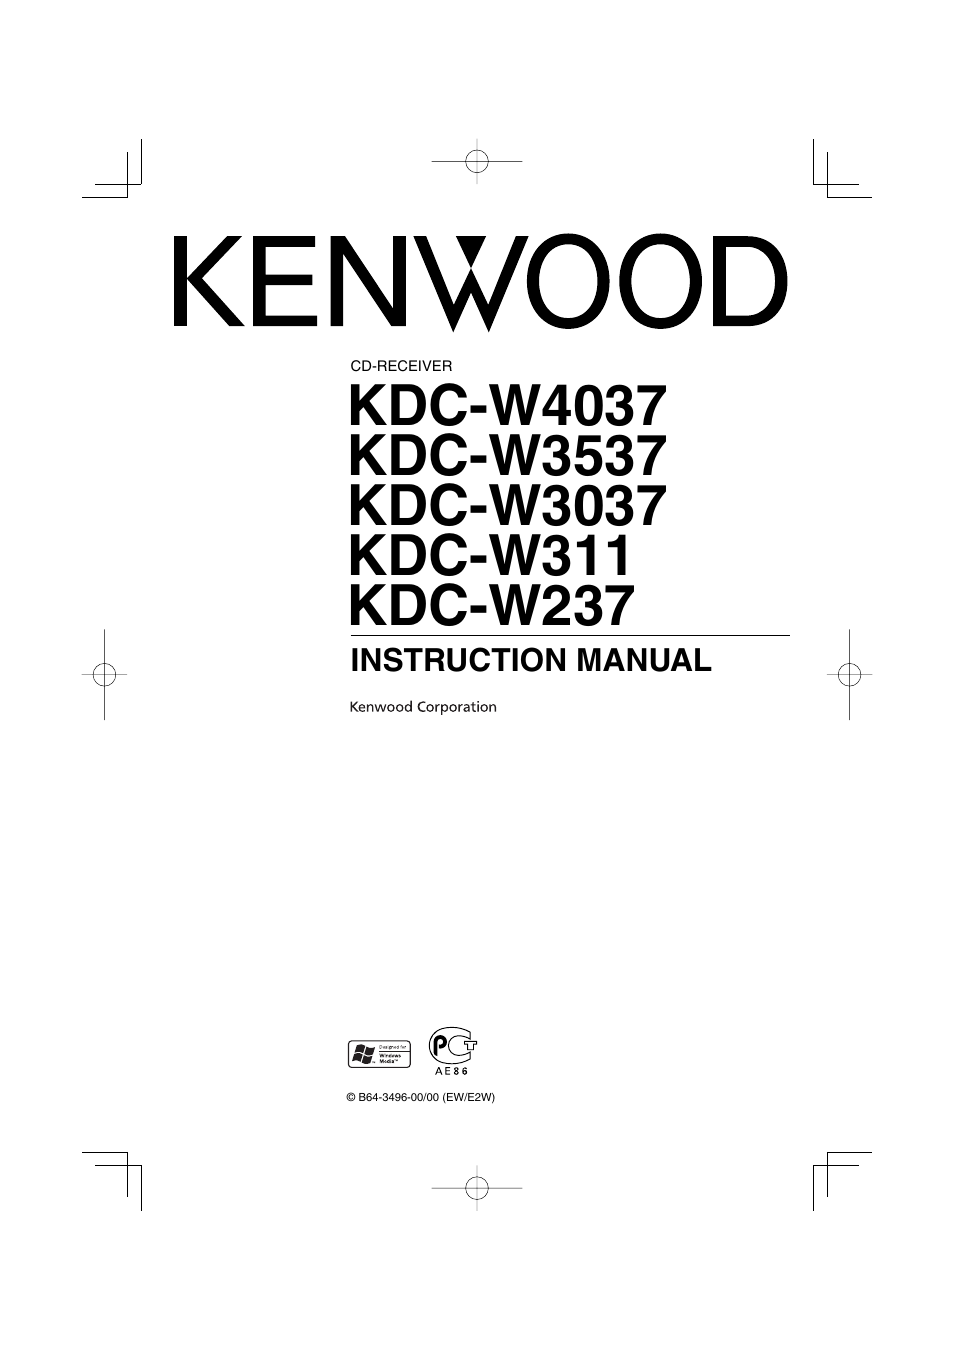 kenwood kdc w4037 user manual 36 pages also for kdc w237 kdc rh manualsdir com Kenwood KC 991 User Manuals Kenwood KDC 248U Manual